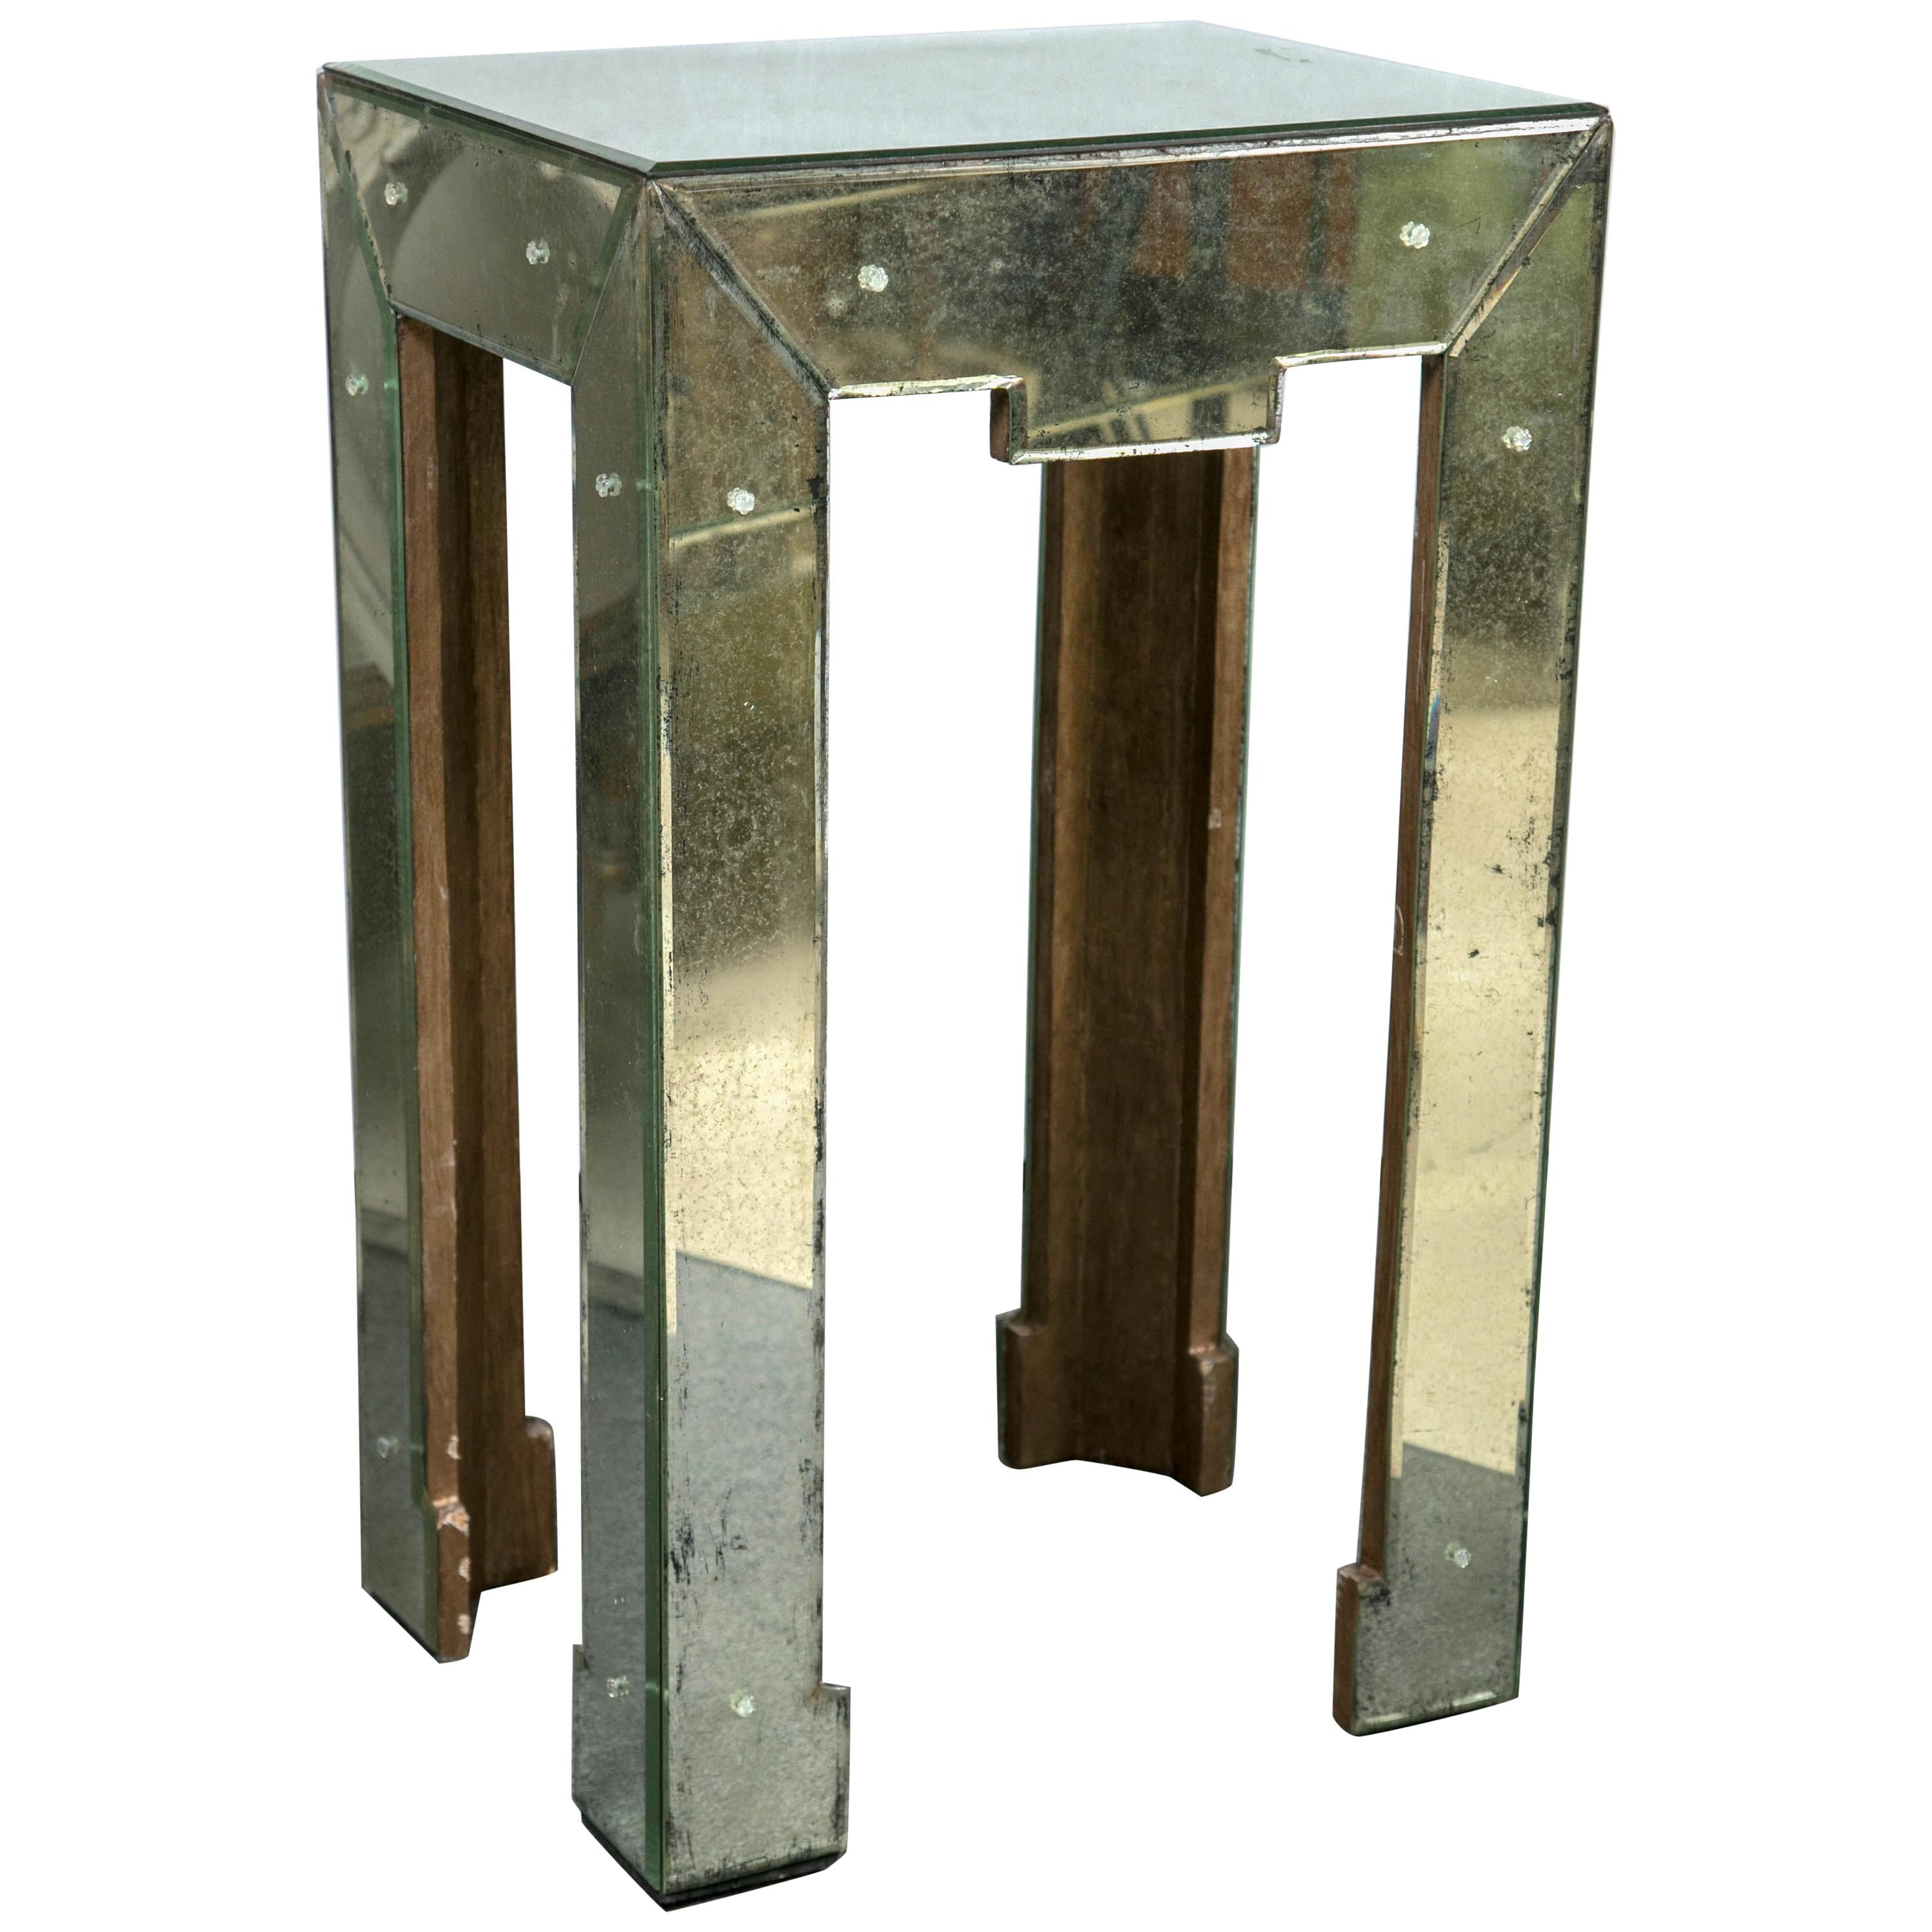 Art Deco Style Antiqued Mirrored Side or End Table Greek Key Shaped Apron